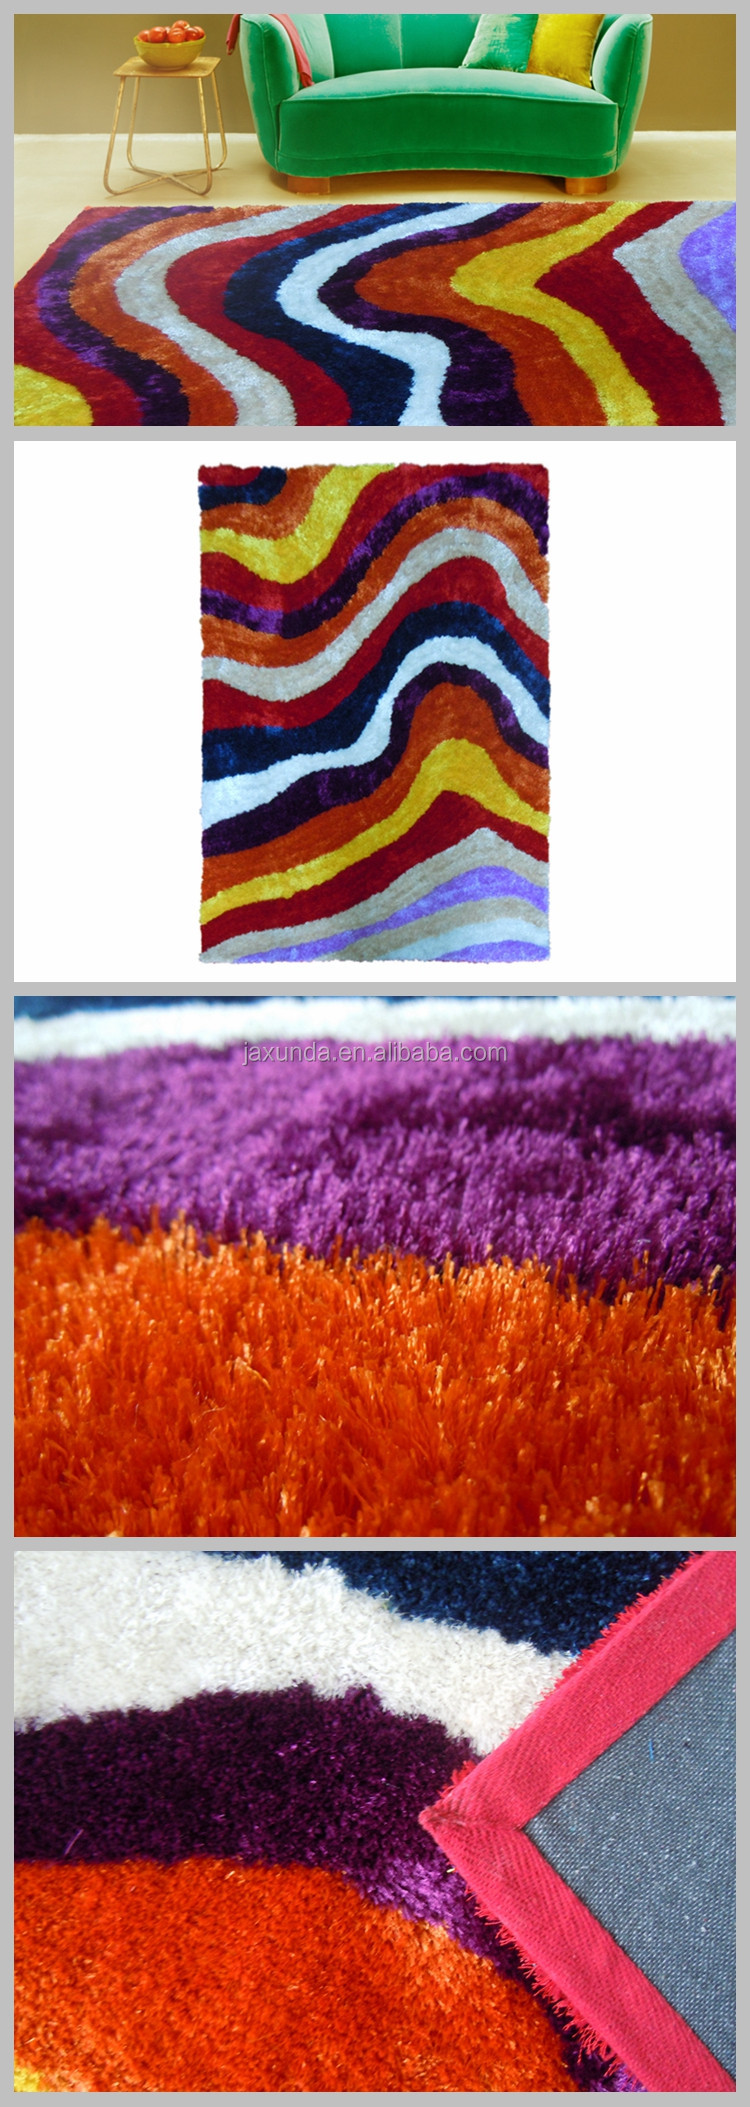 100% polyester colourful rainbow Ultra soft surface High pile shaggy carpet for home